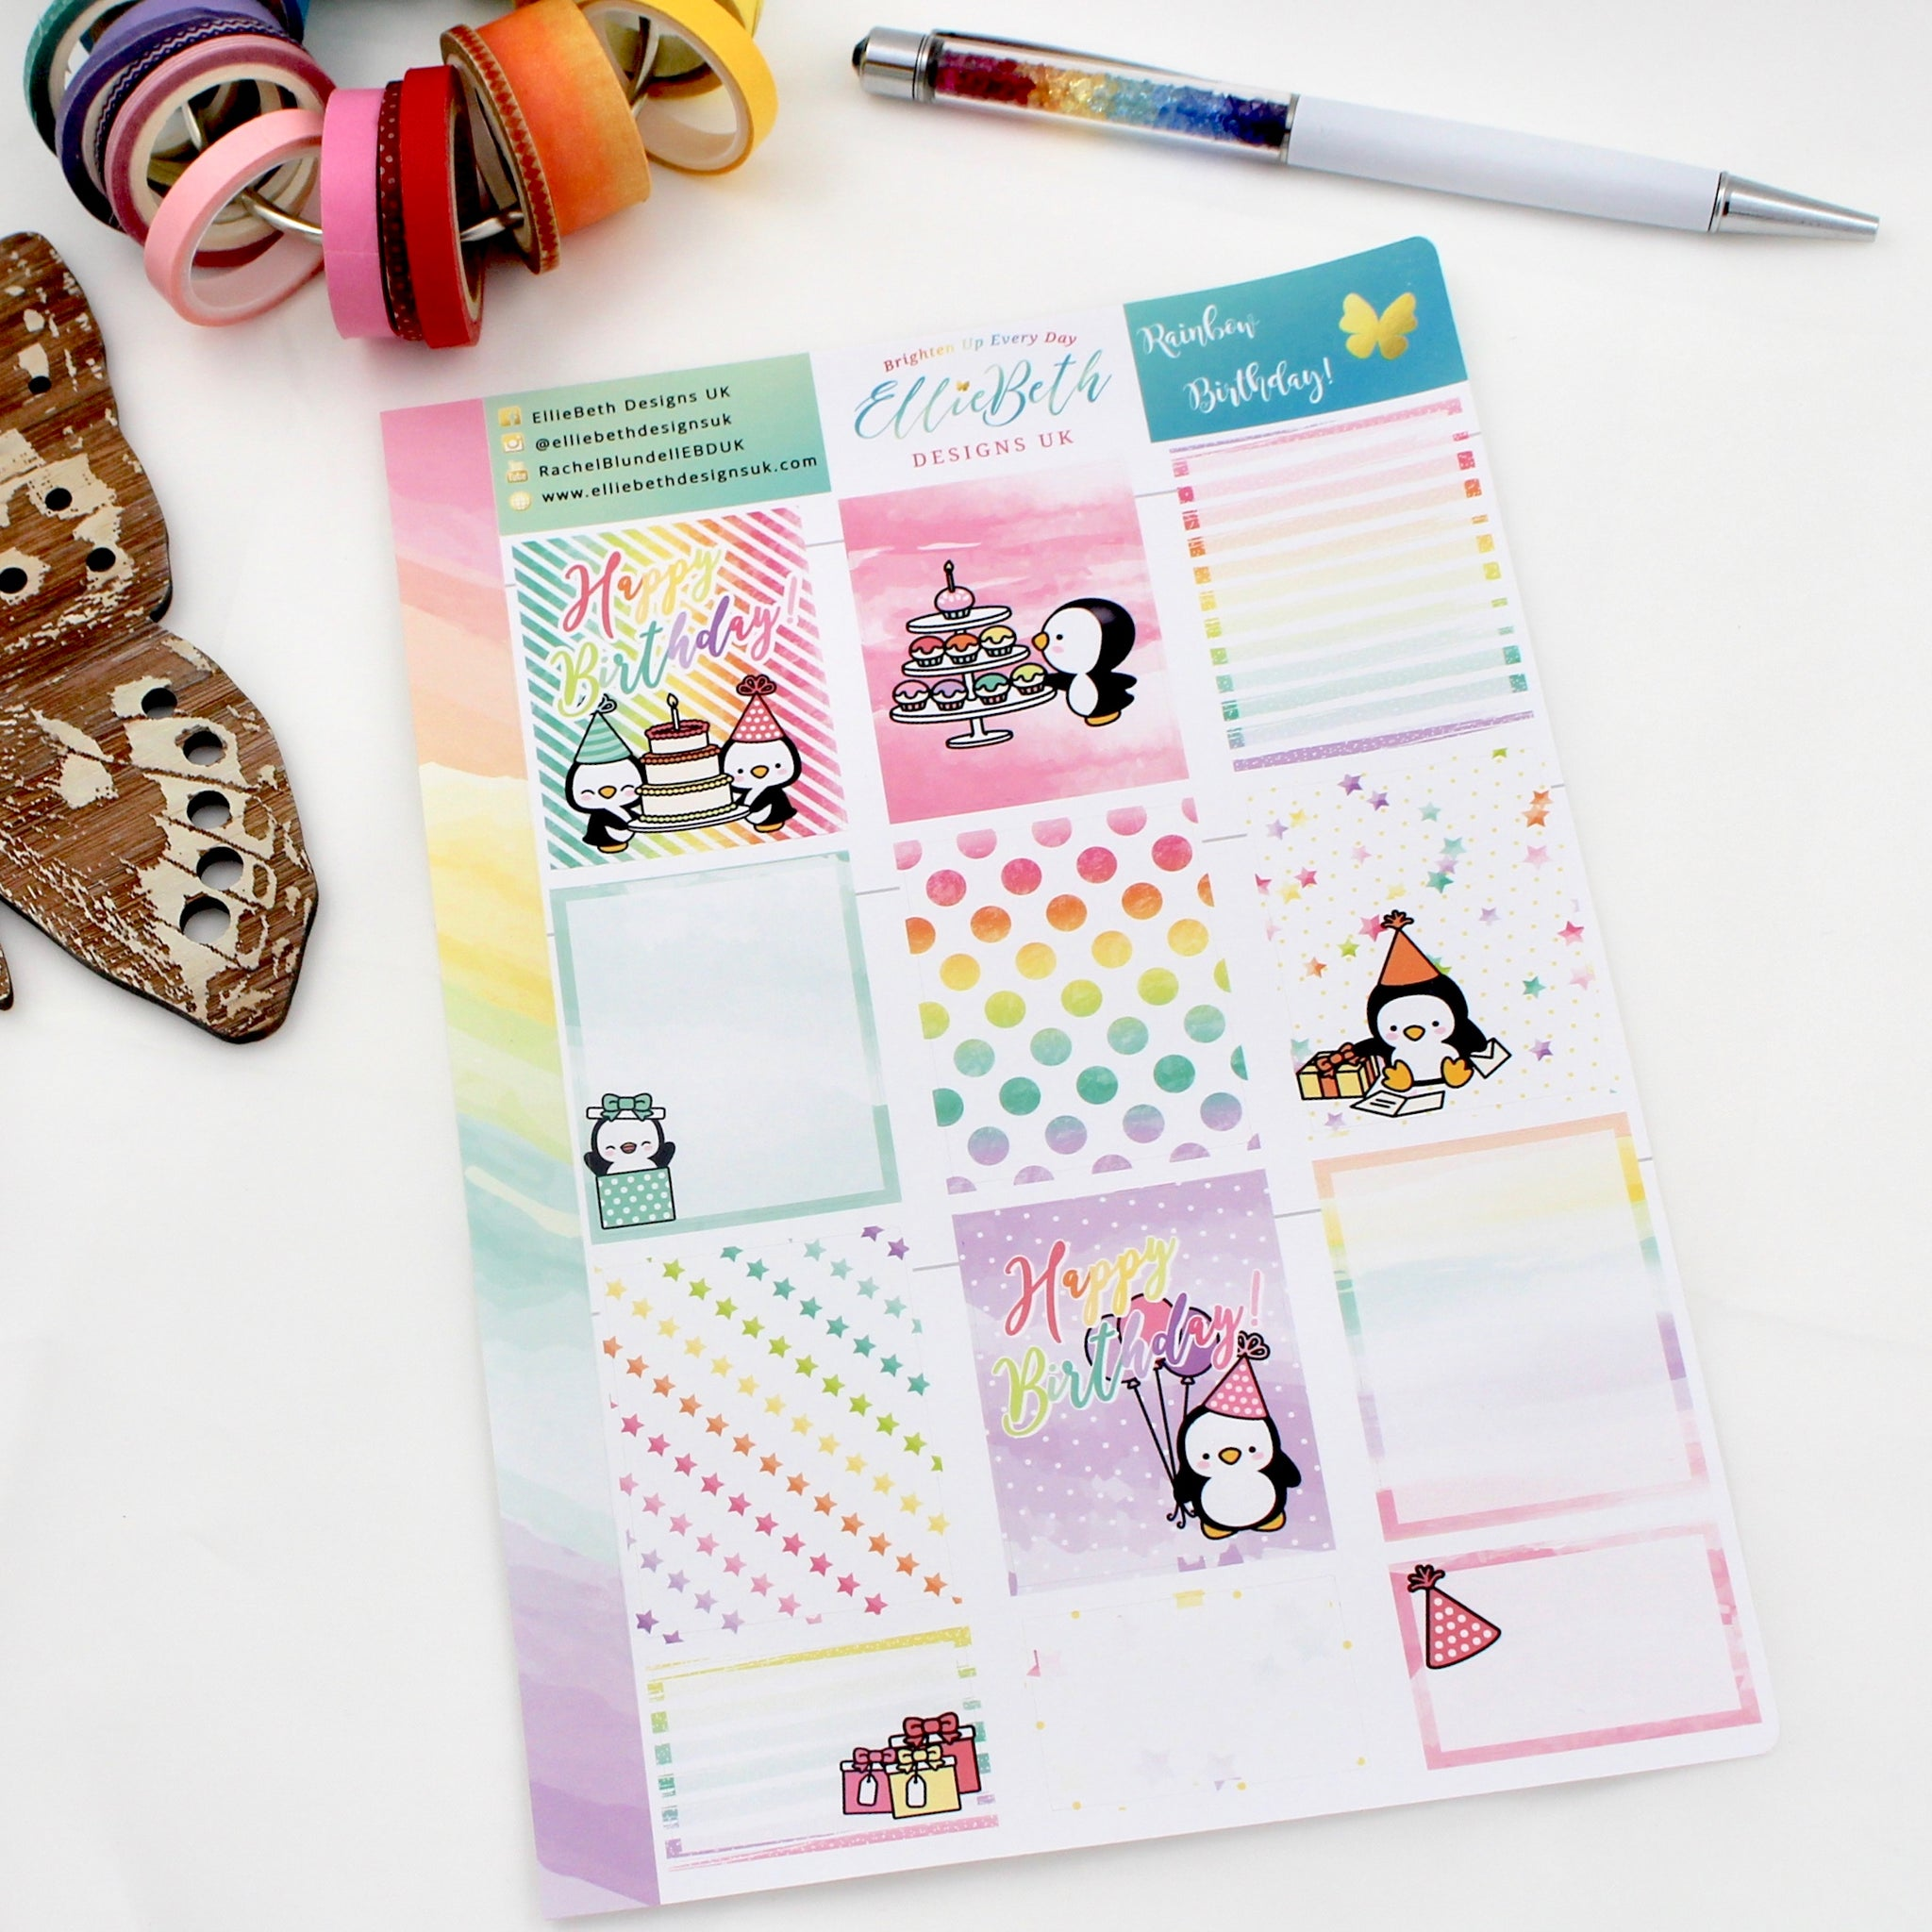 'Rainbow Birthday' - Designer Full and Half Boxes Sheet -  A5 binder ready planner stickers